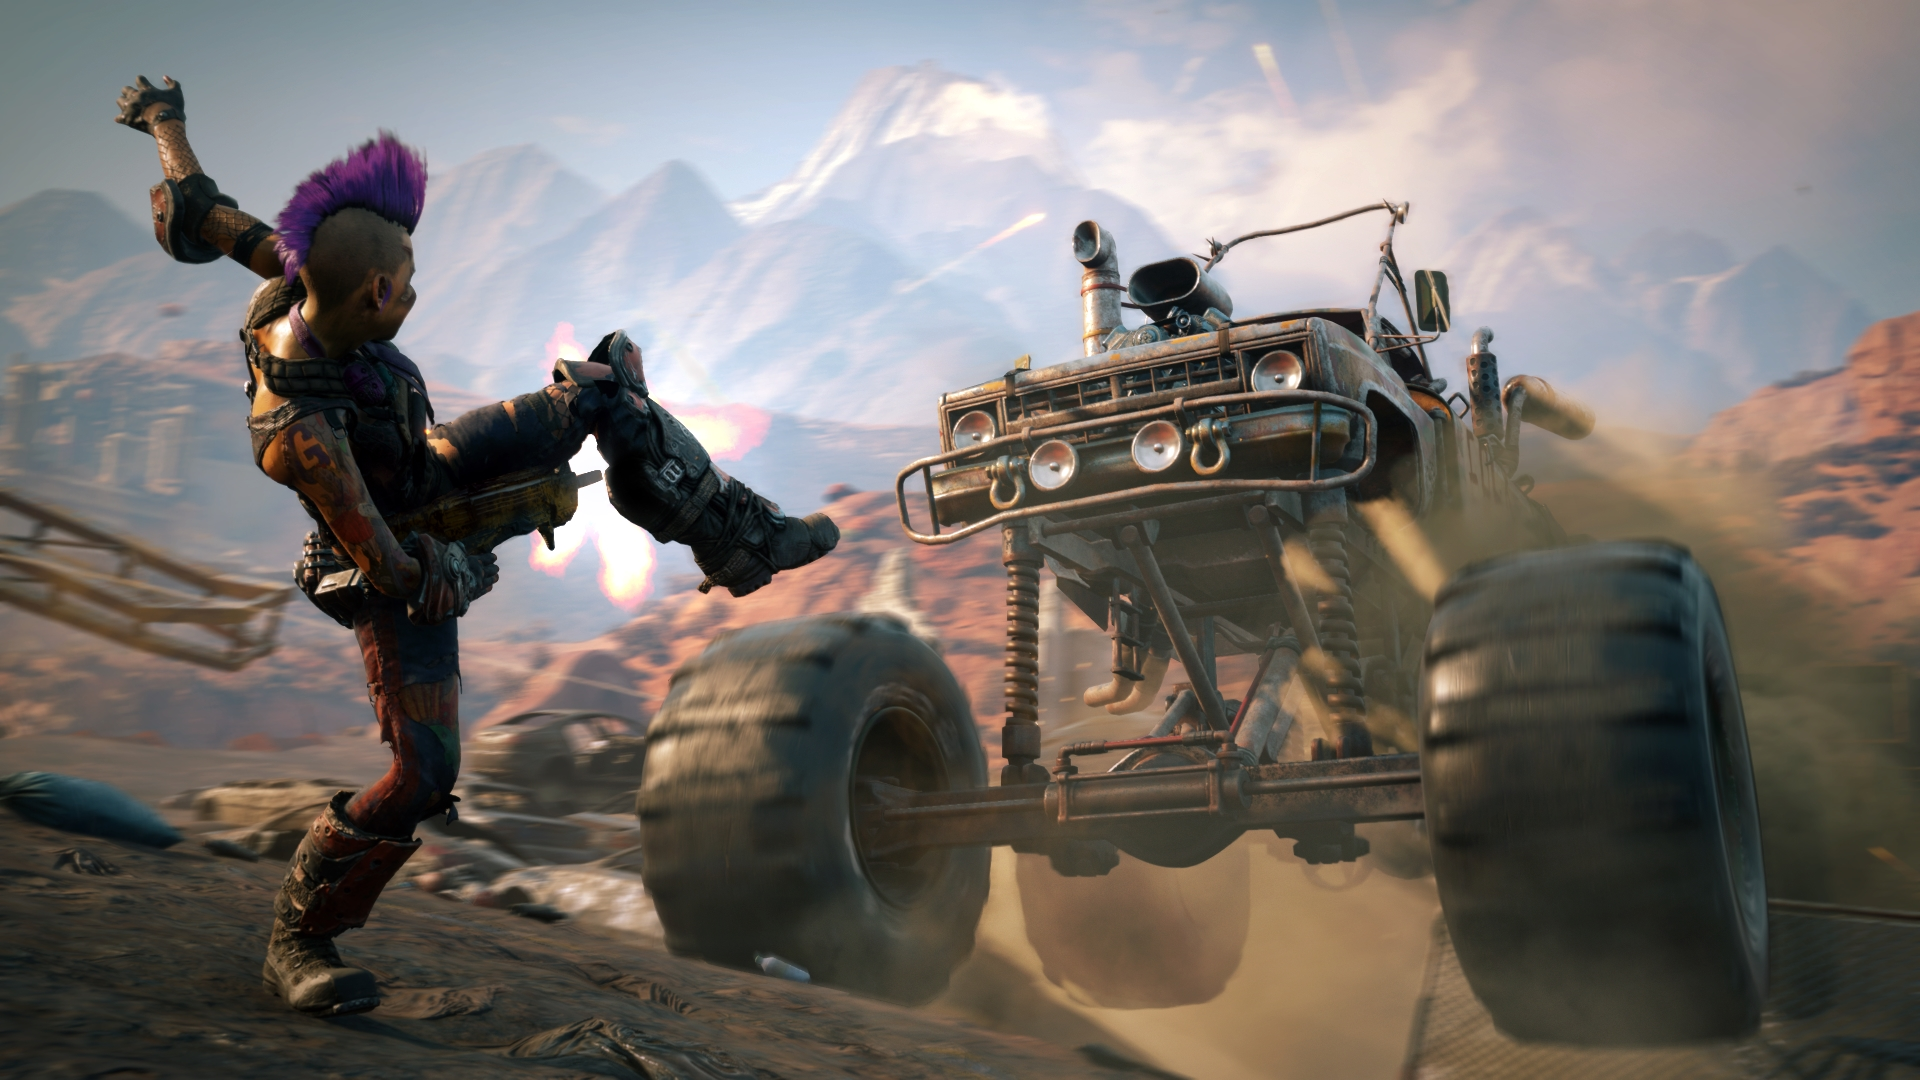 Rage 2 - it looks more fun than angry